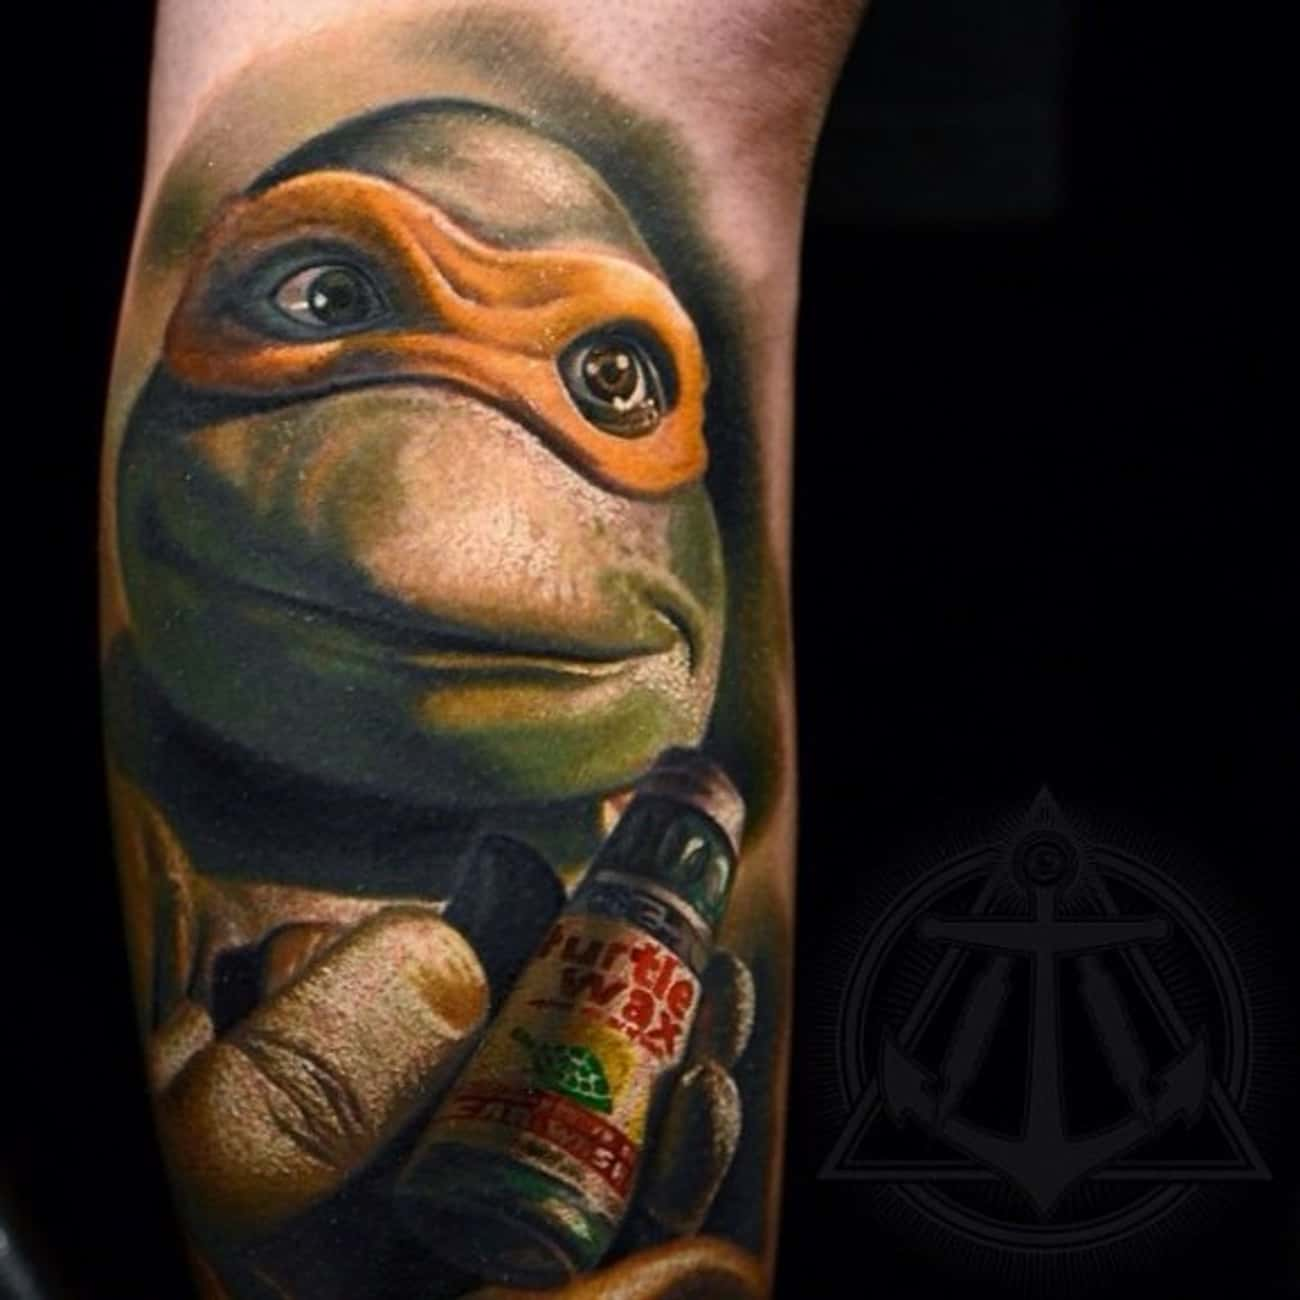 Mikey Is Ready for His Close-U is listed (or ranked) 3 on the list 26 Awesome Tattoos Inspired by Teenage Mutant Ninja Turtles